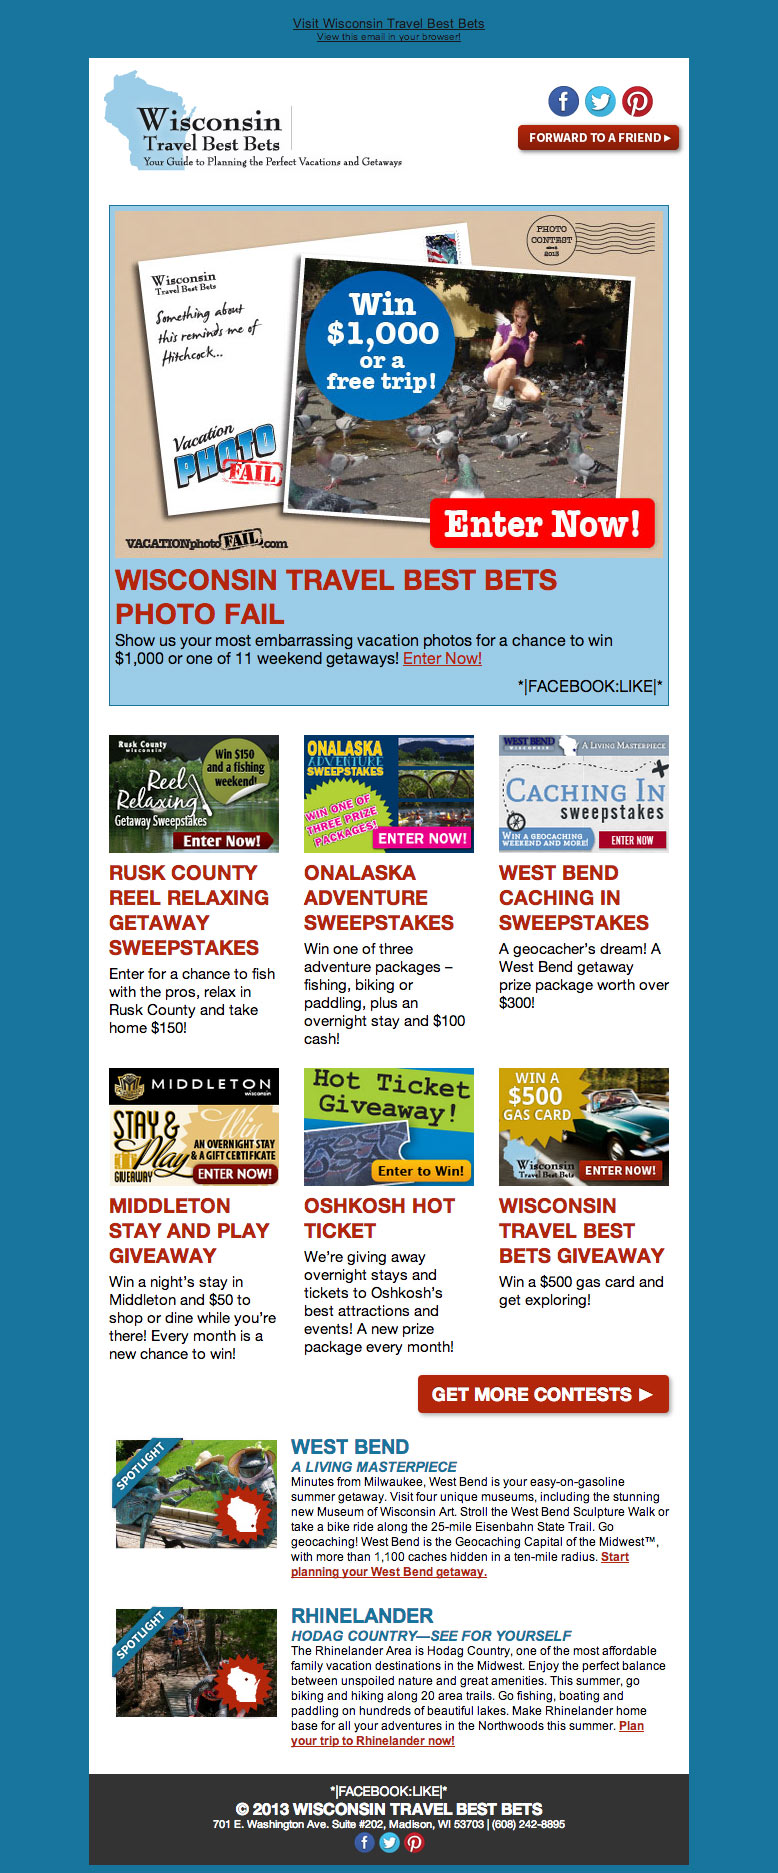 Wisconsin Travel Best Bets Contests Enewsletter